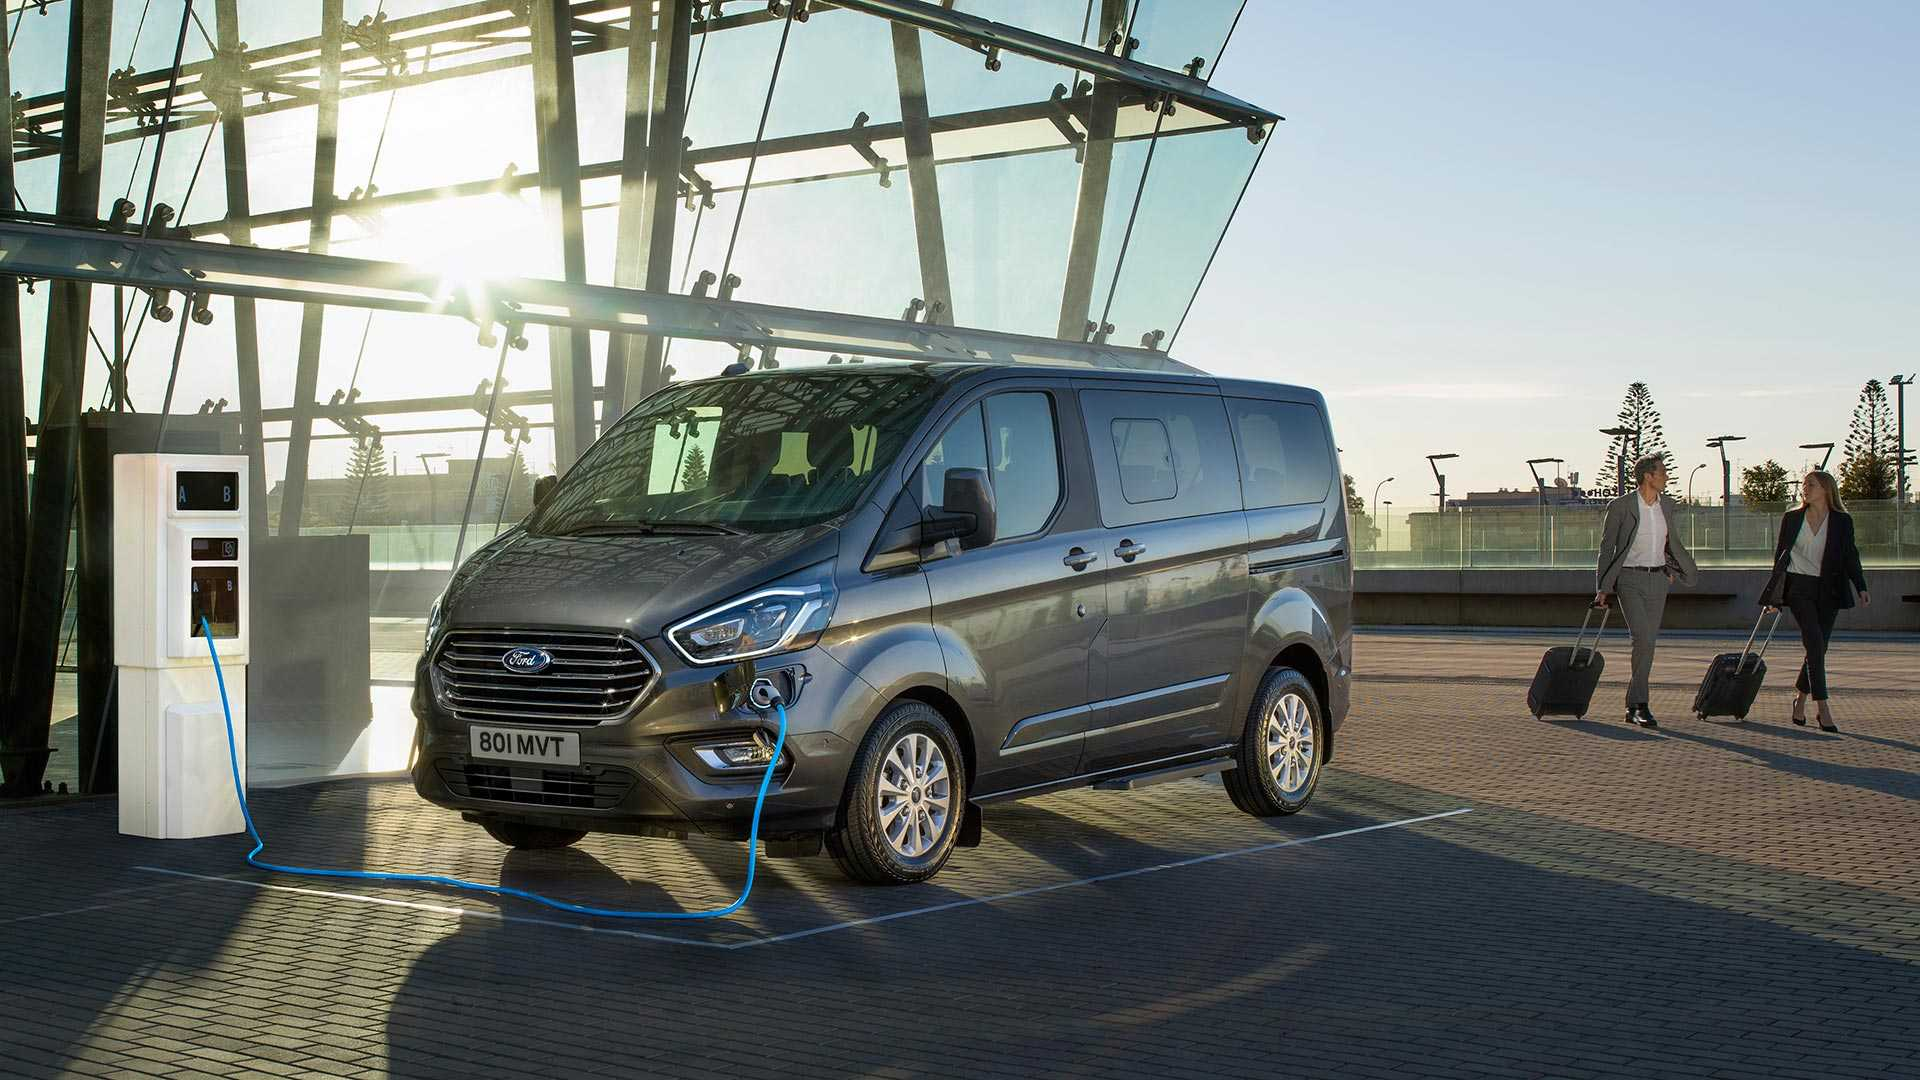 2019 Ford Tourneo Custom Phev Debuts As Ultra Efficient People Mover